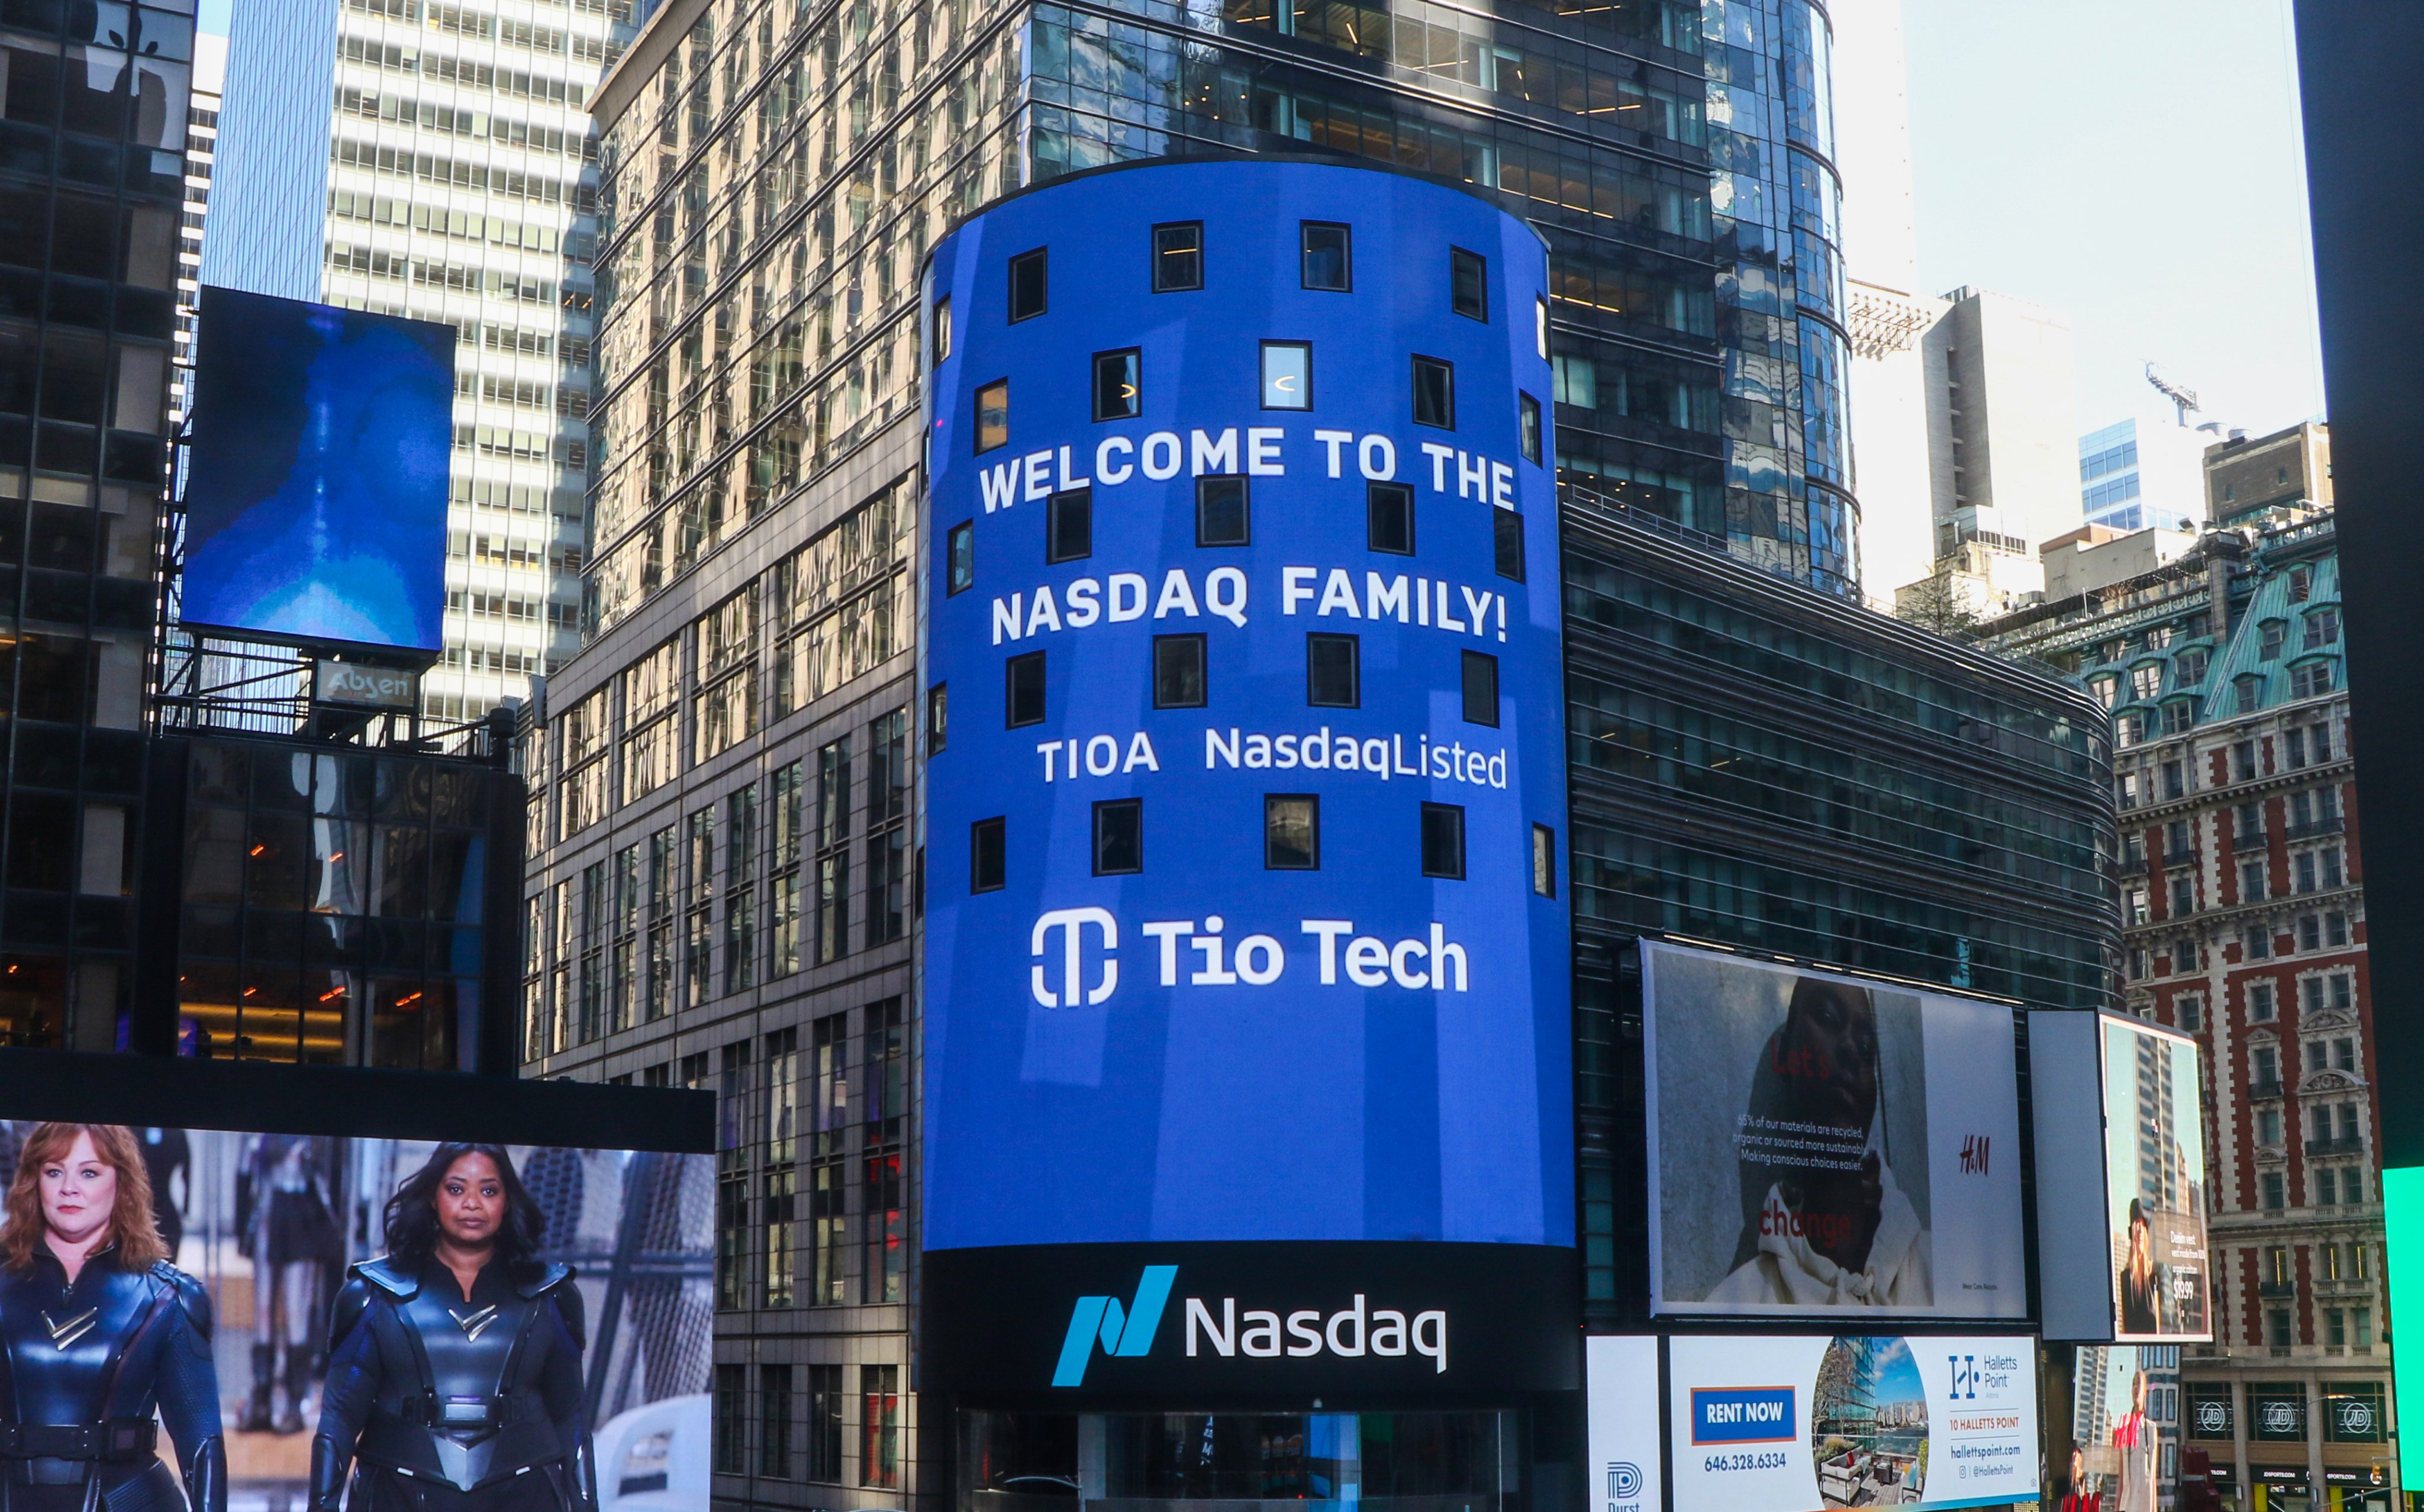 New $300 Million SPAC 'Tio Tech' Counts Former Spark Networks CEO as Board Member